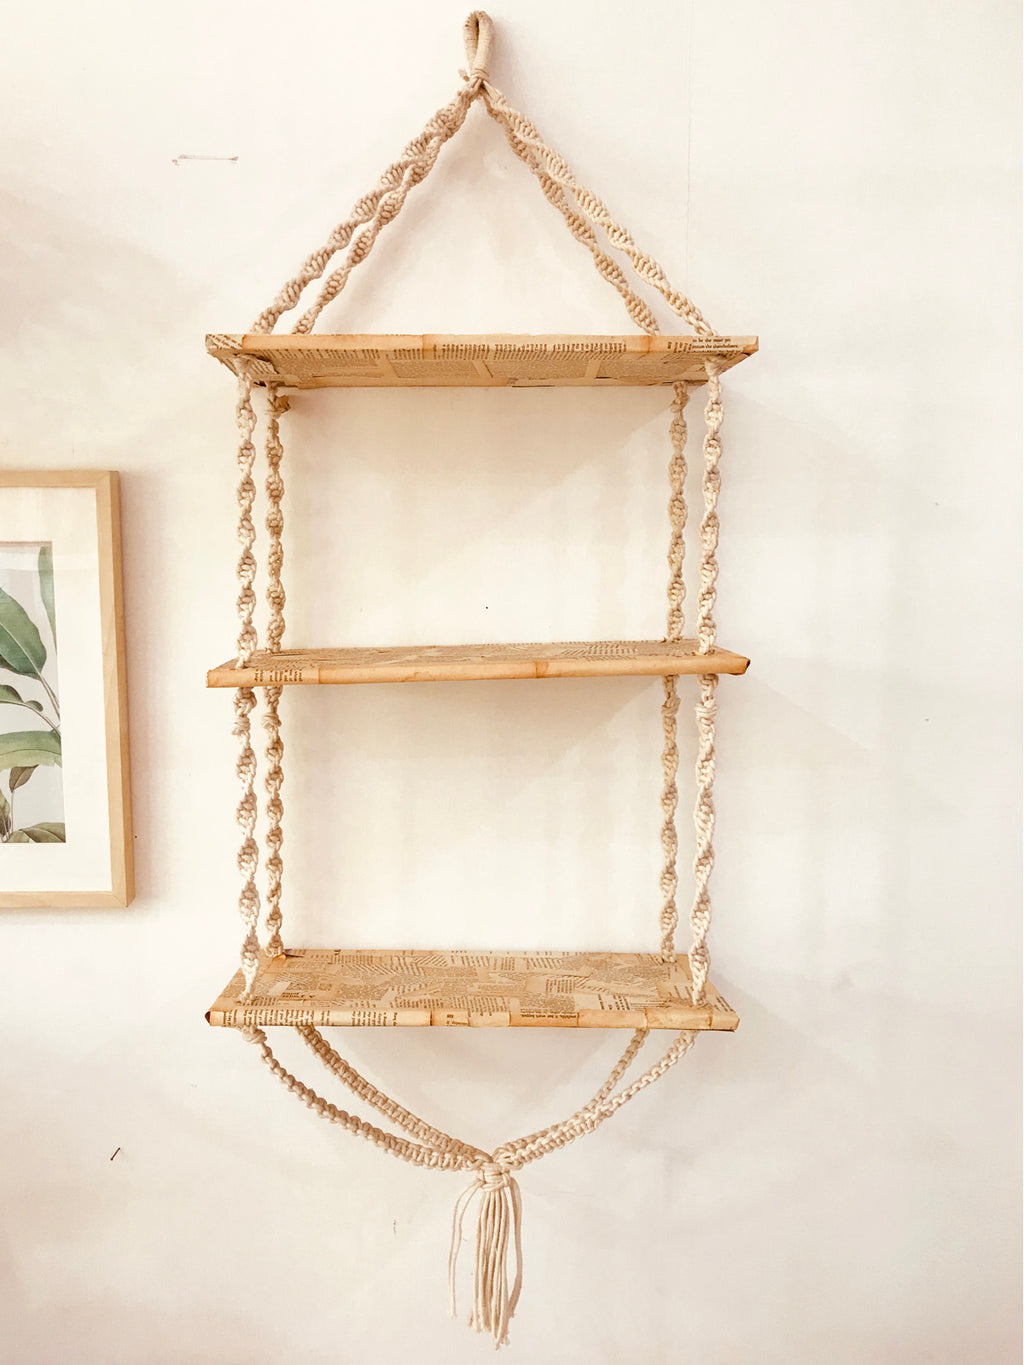 Macrame wall shelves